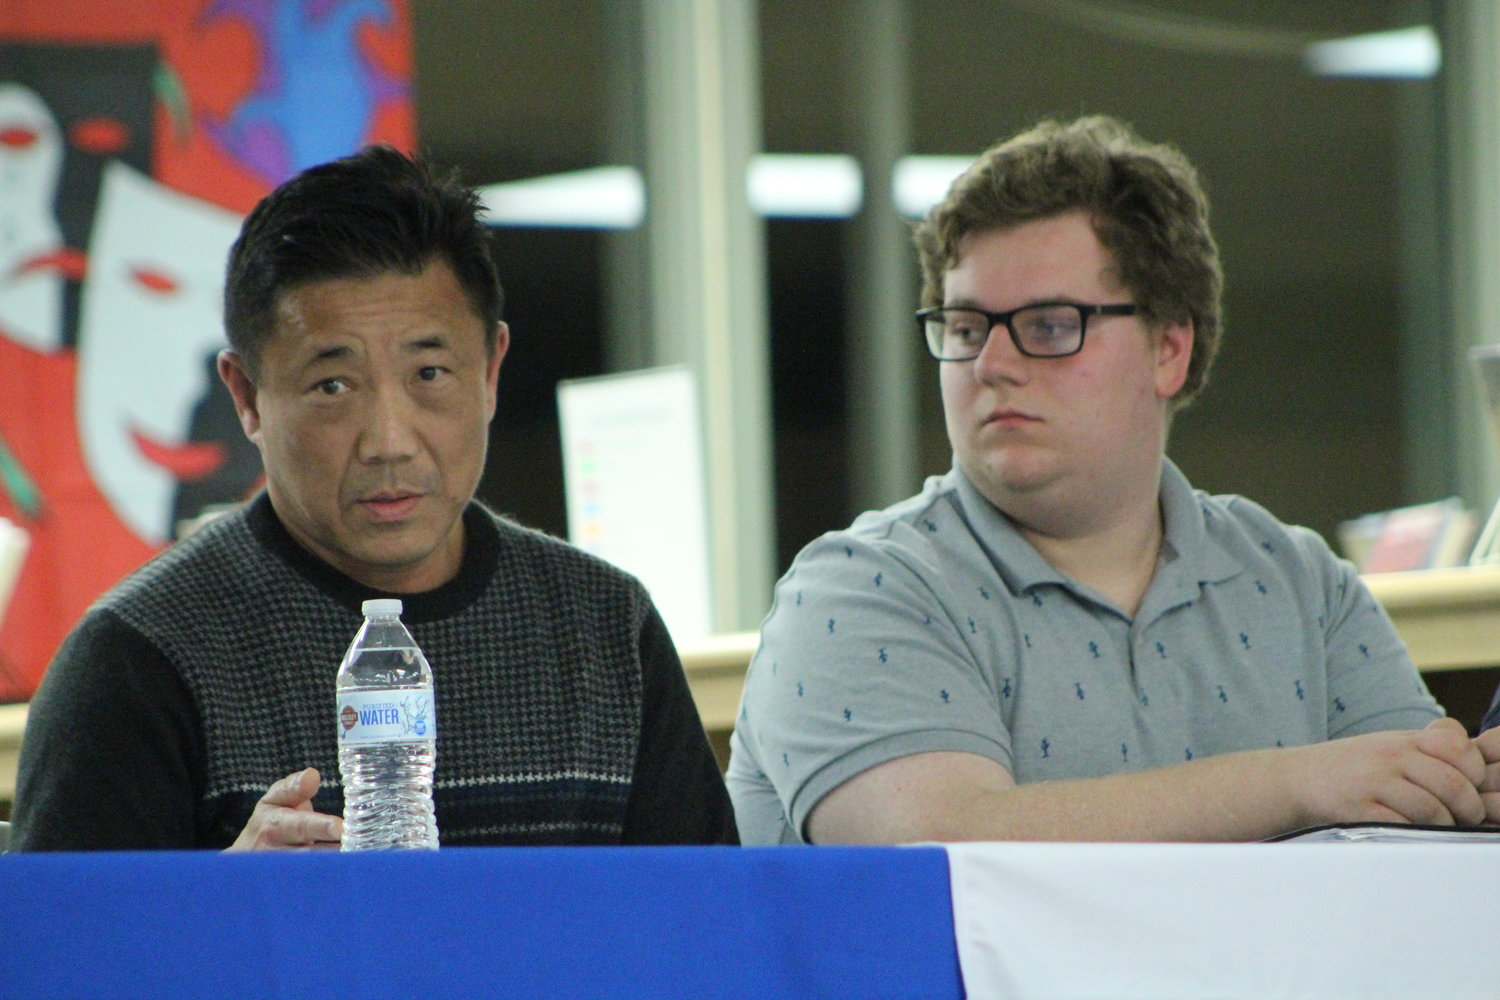 Dr. James Chen (left), a Portsmouth resident and urgent care physician, and Mt. Hope High School senior and Tobacco 21 advocate Sean Palumbo share their knowledge on the vaping crisis during a panel discussion at the Portsmouth Middle School library on Thursday, Nov. 7.